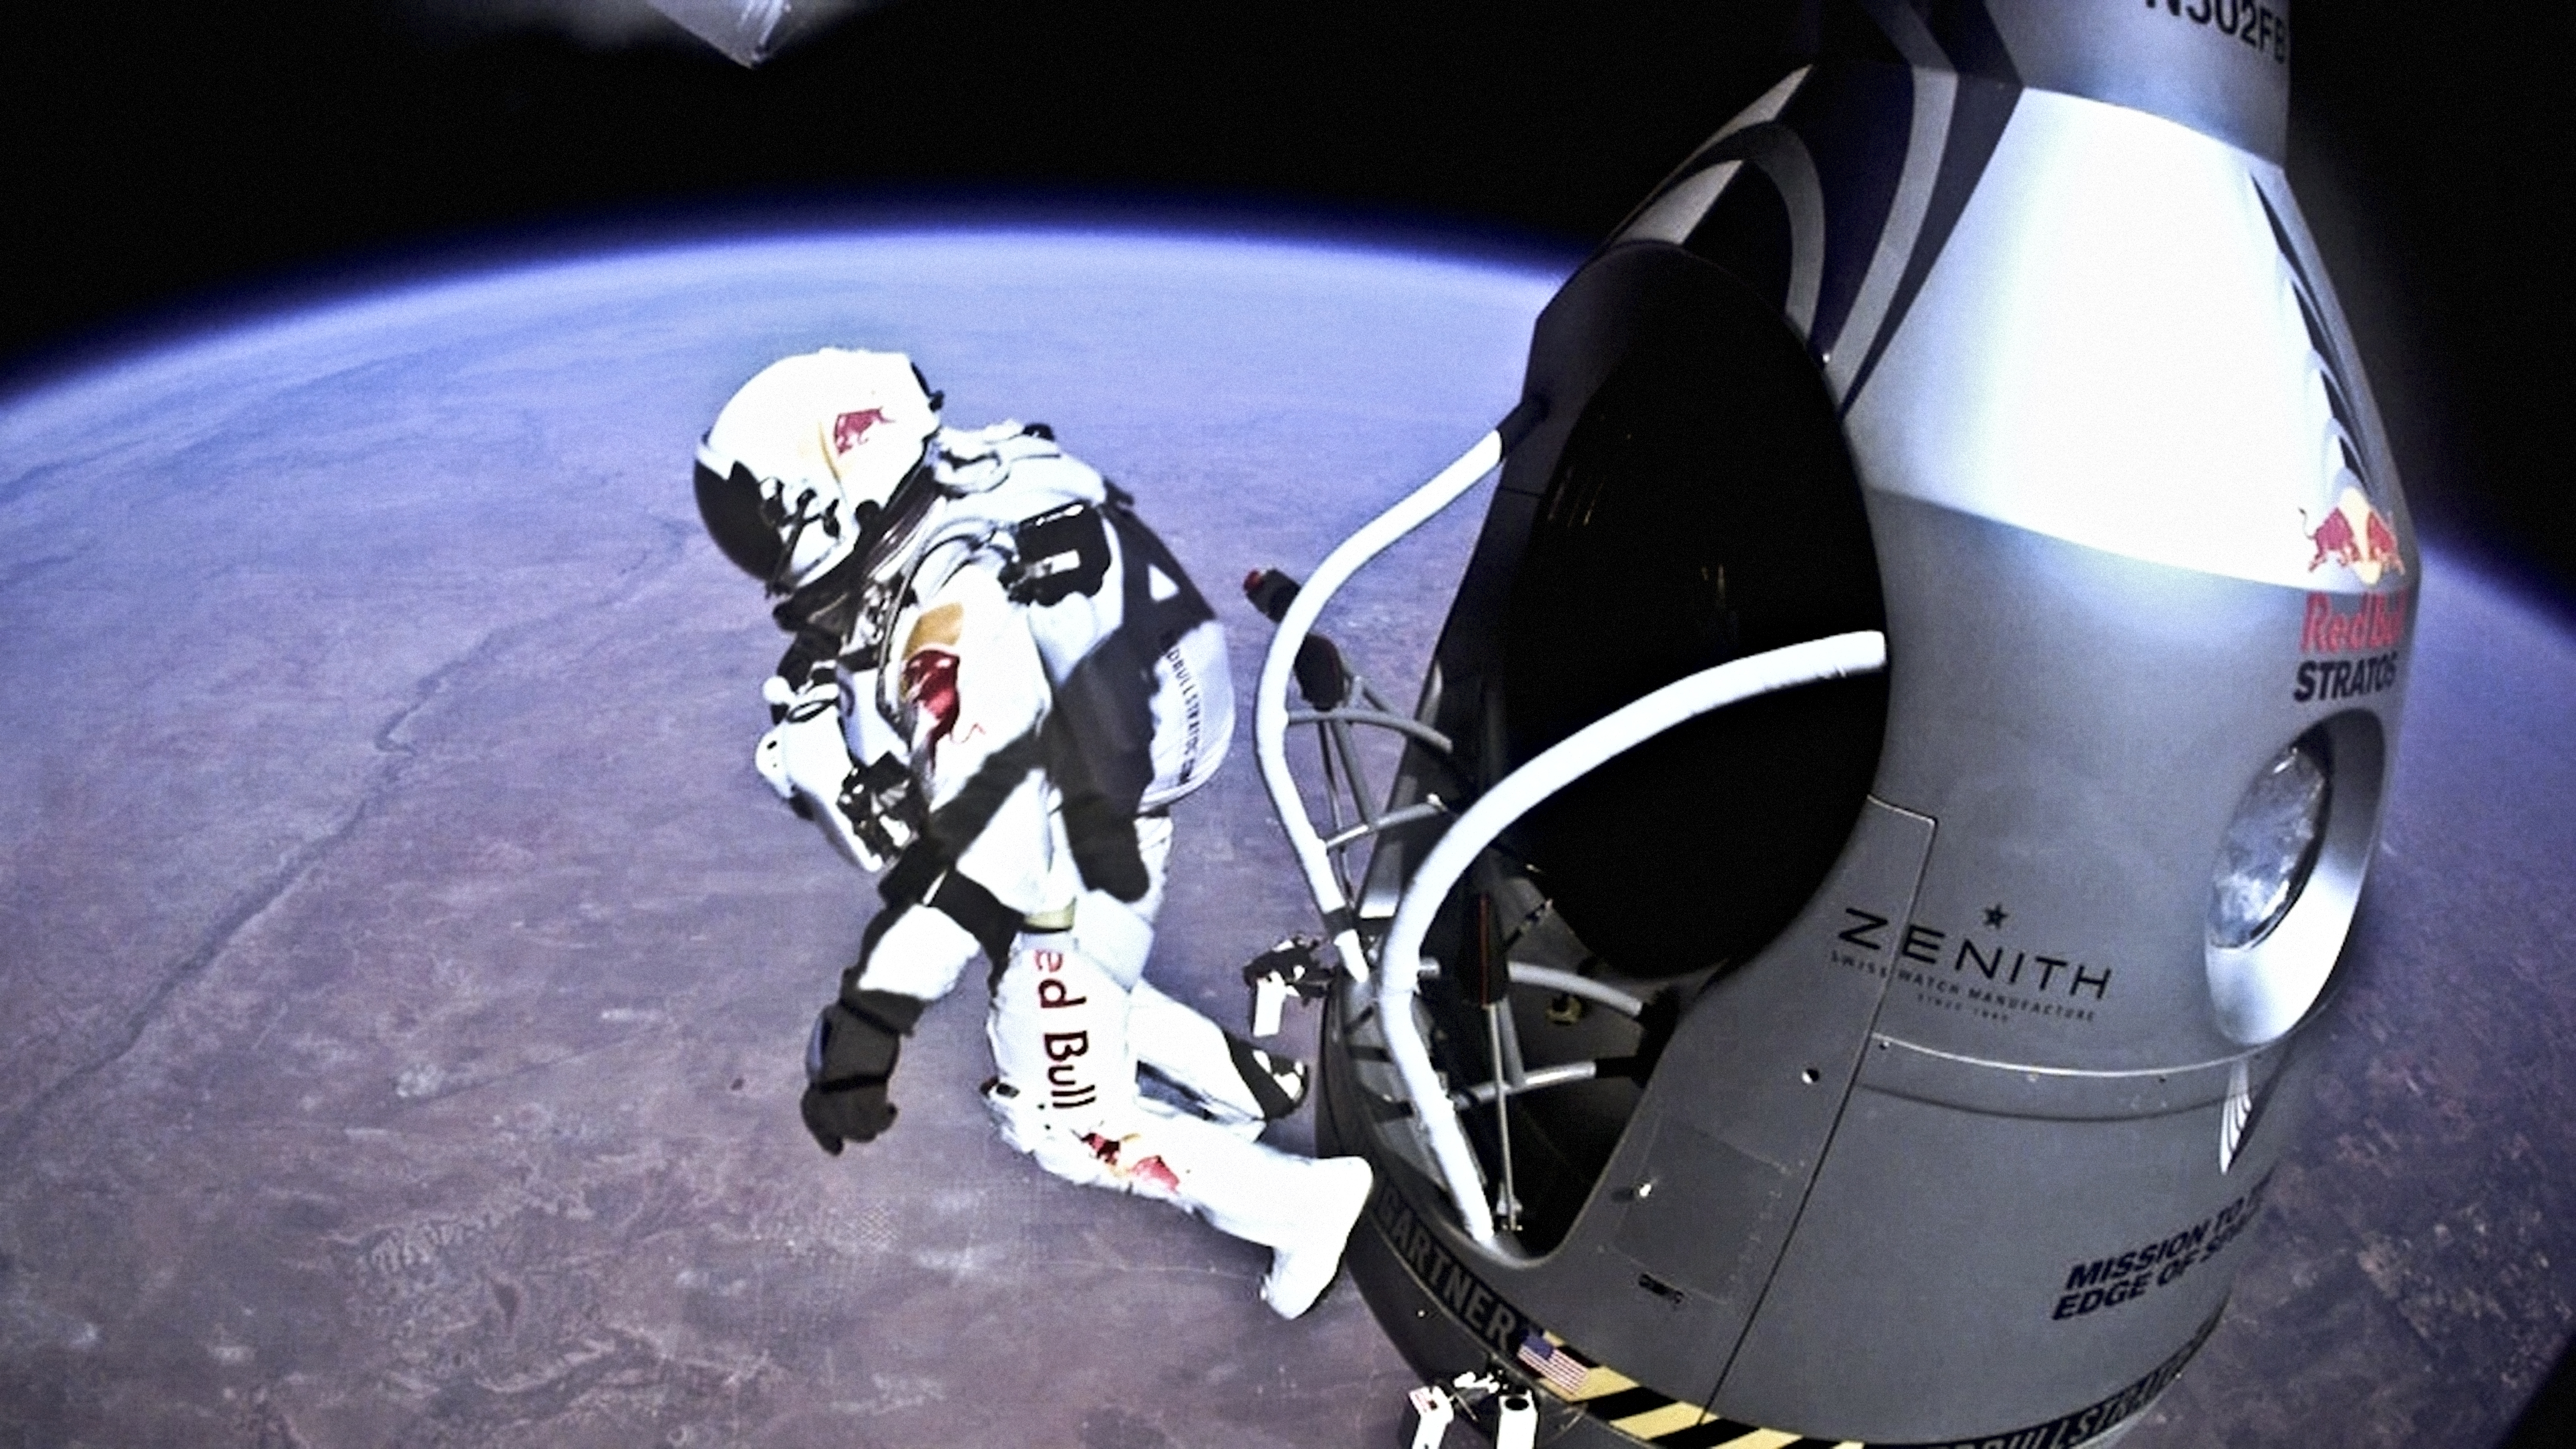 Red Bull Stratos - Mission Jump